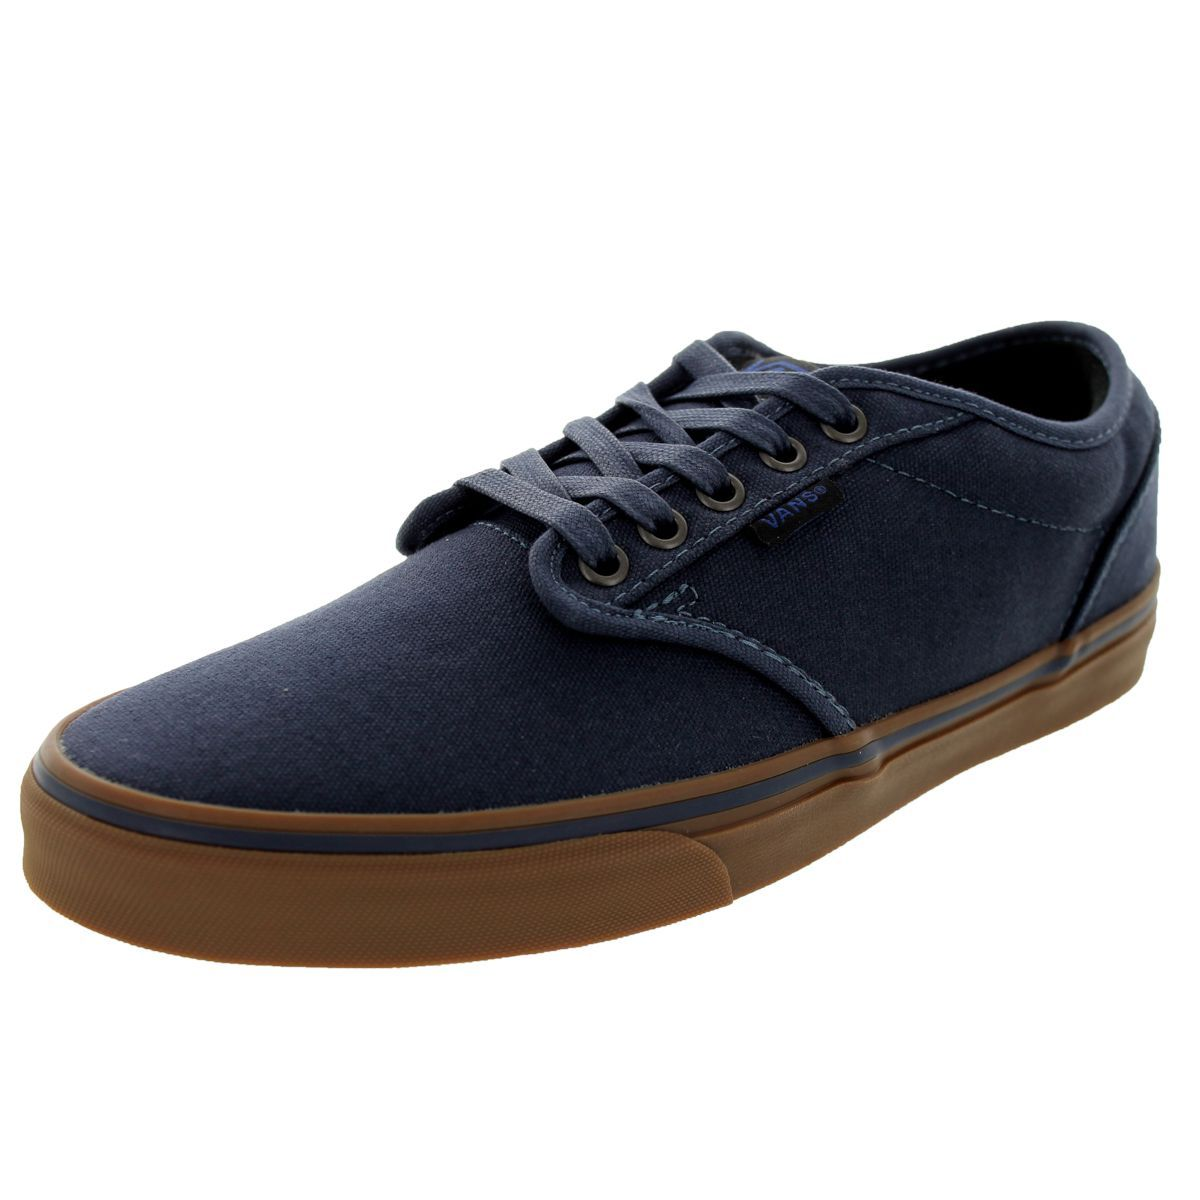 94d87b9feedf Vans Men s Atwood Navy and Gum 12-ounce Canvas Skate Shoes (8.5)